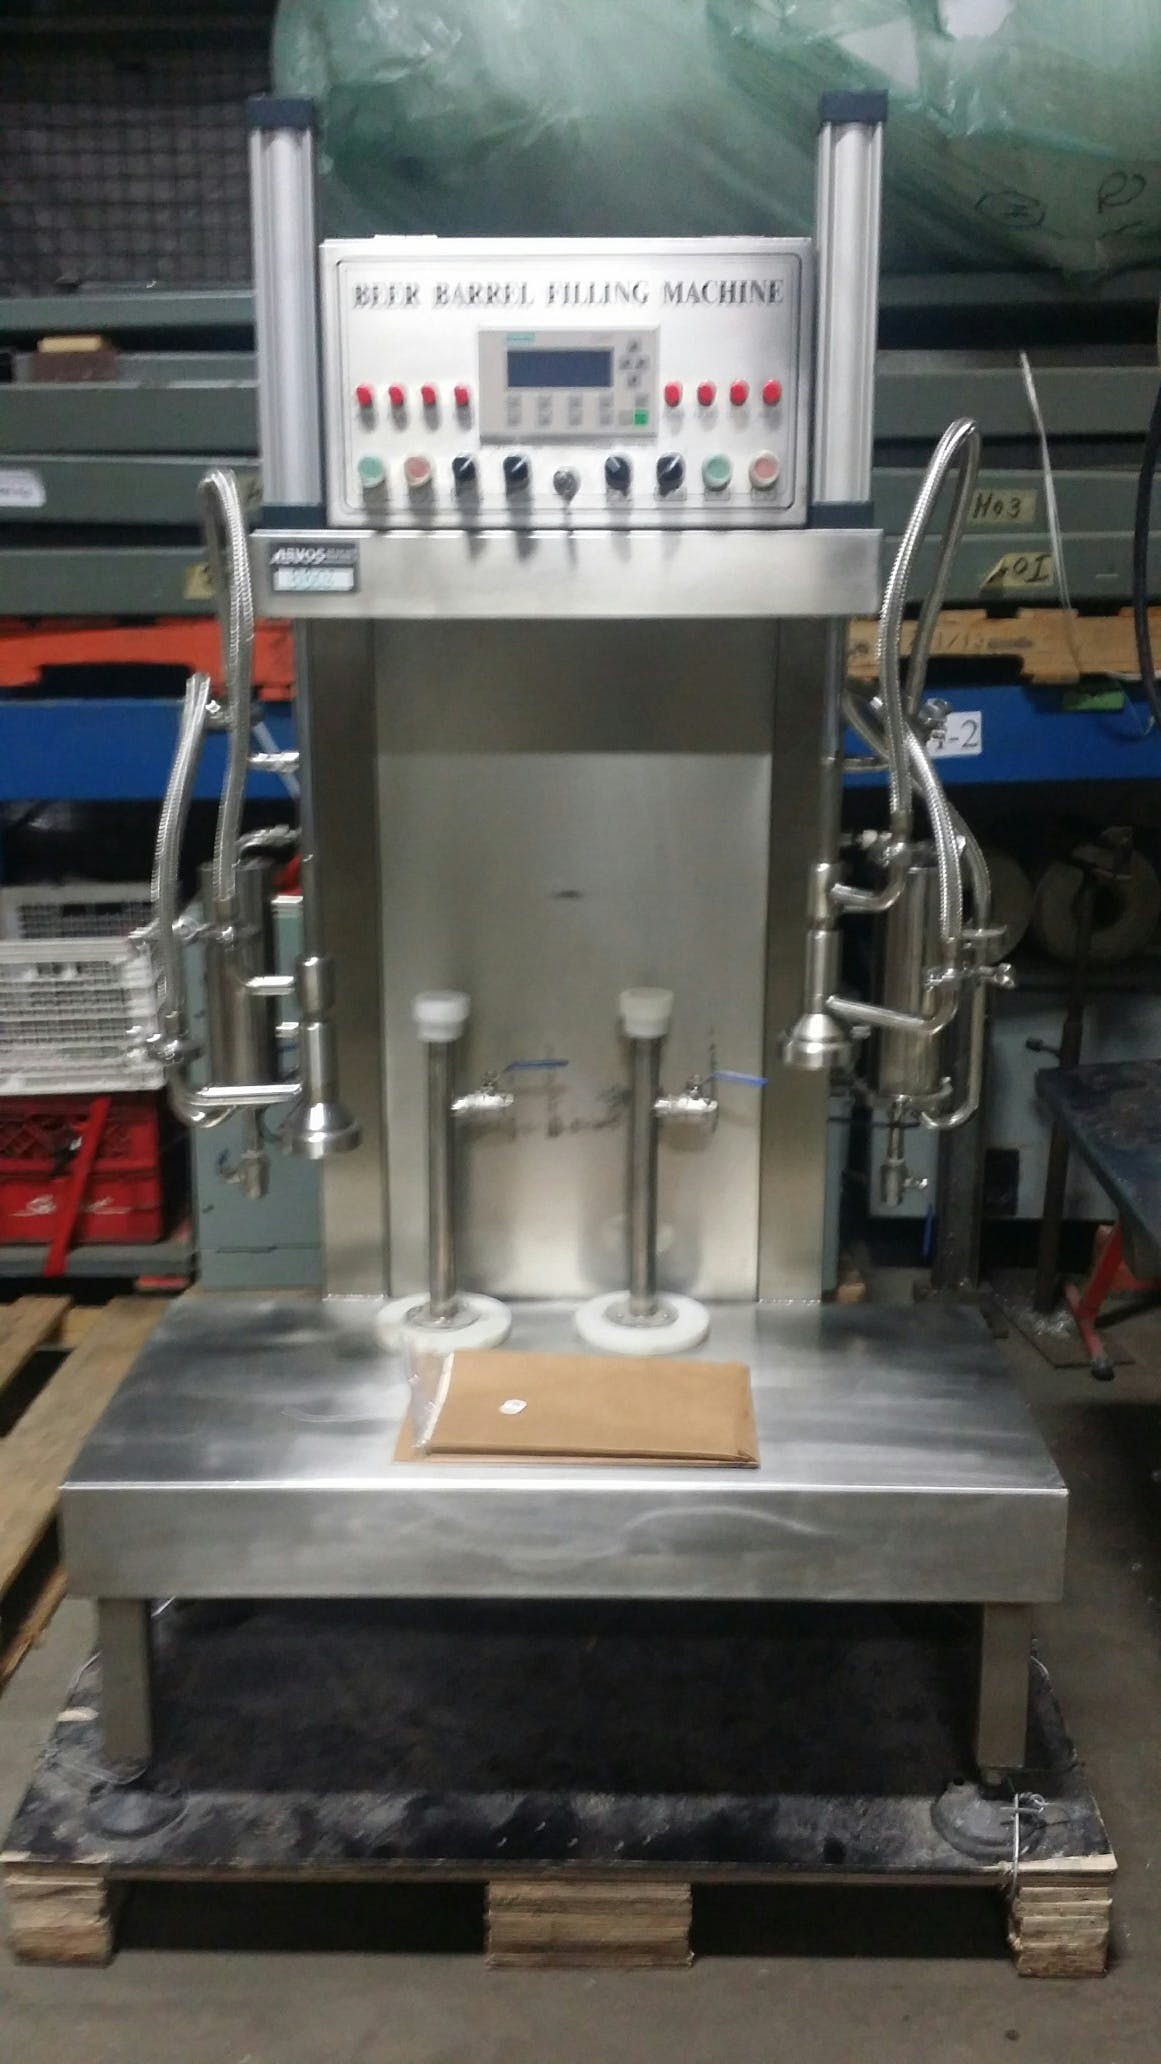 GZ04 Beer Barrel Filling Machine  Keg filler sold by Aevos Equipment